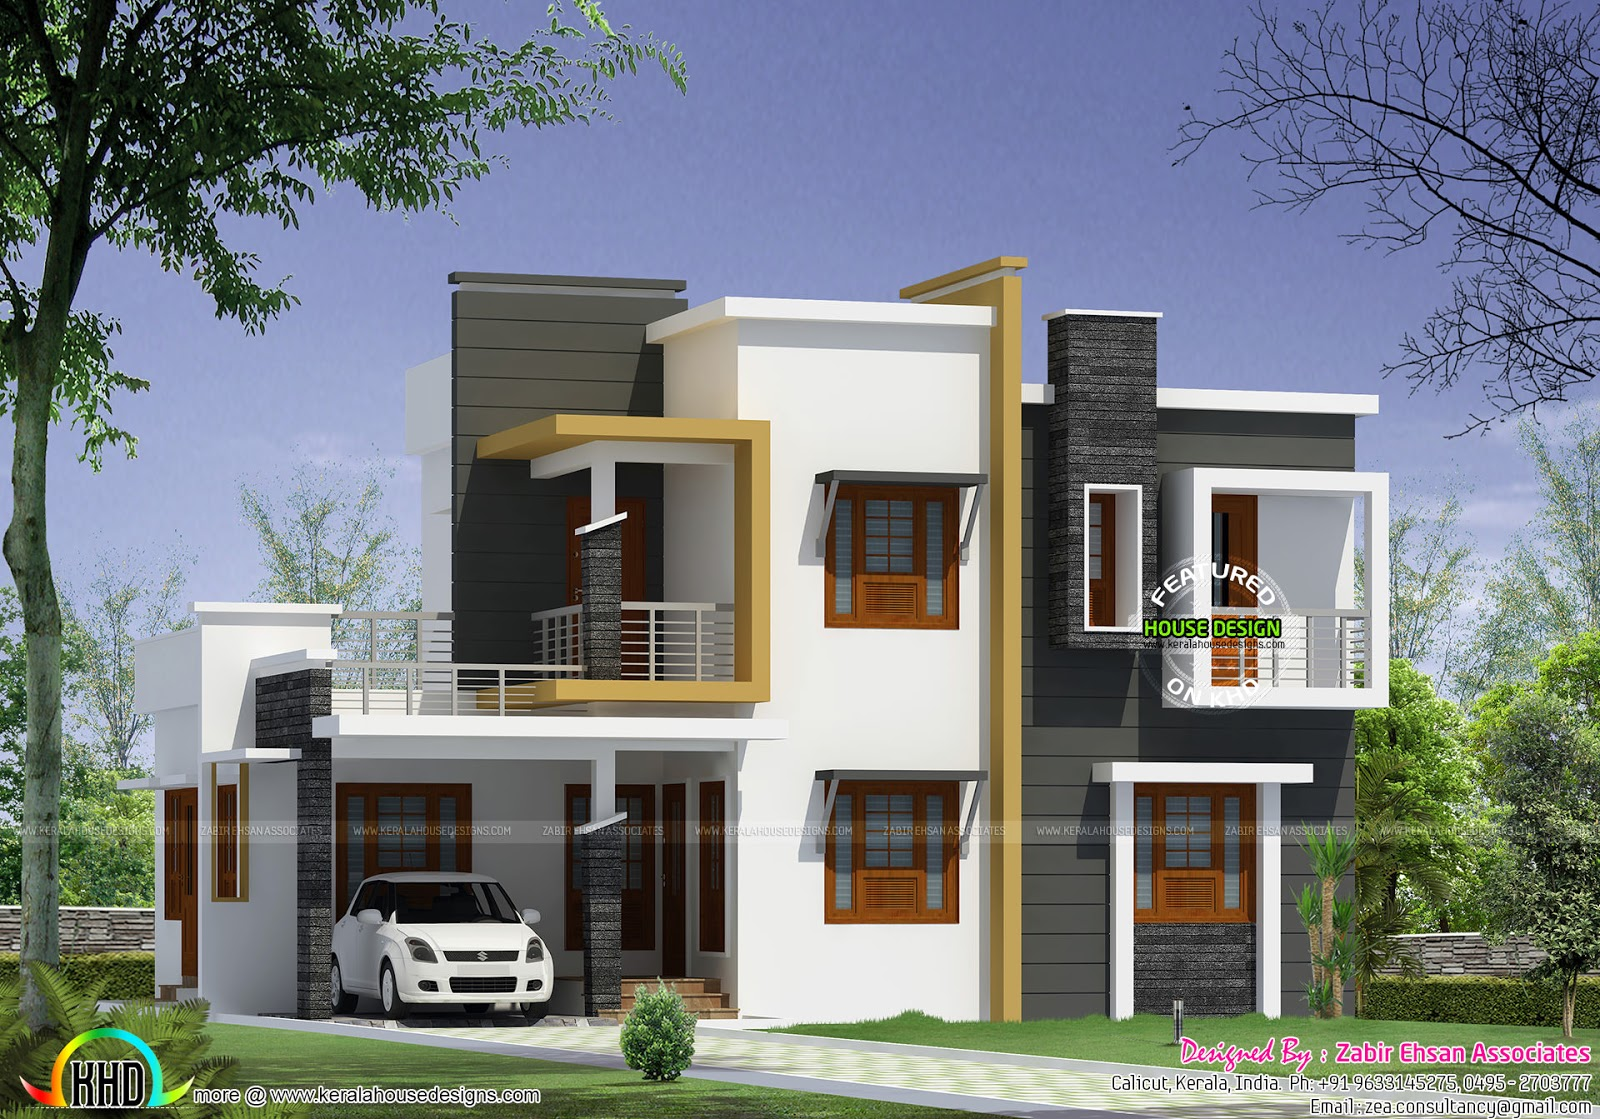 Box type modern house plan kerala home design and floor for Blueprint home plans